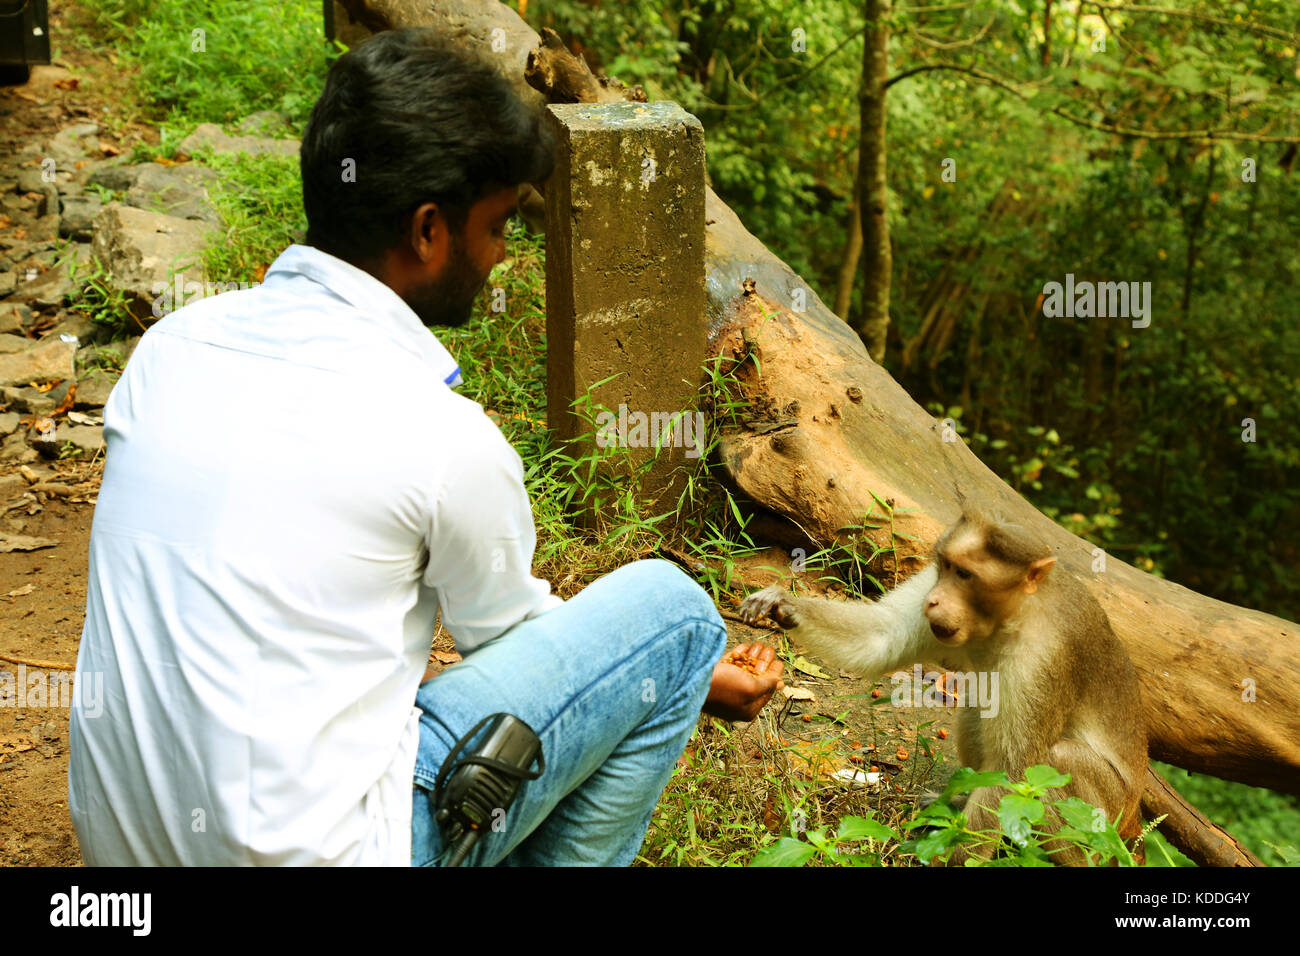 Young man feeding a monkey Stock Photo